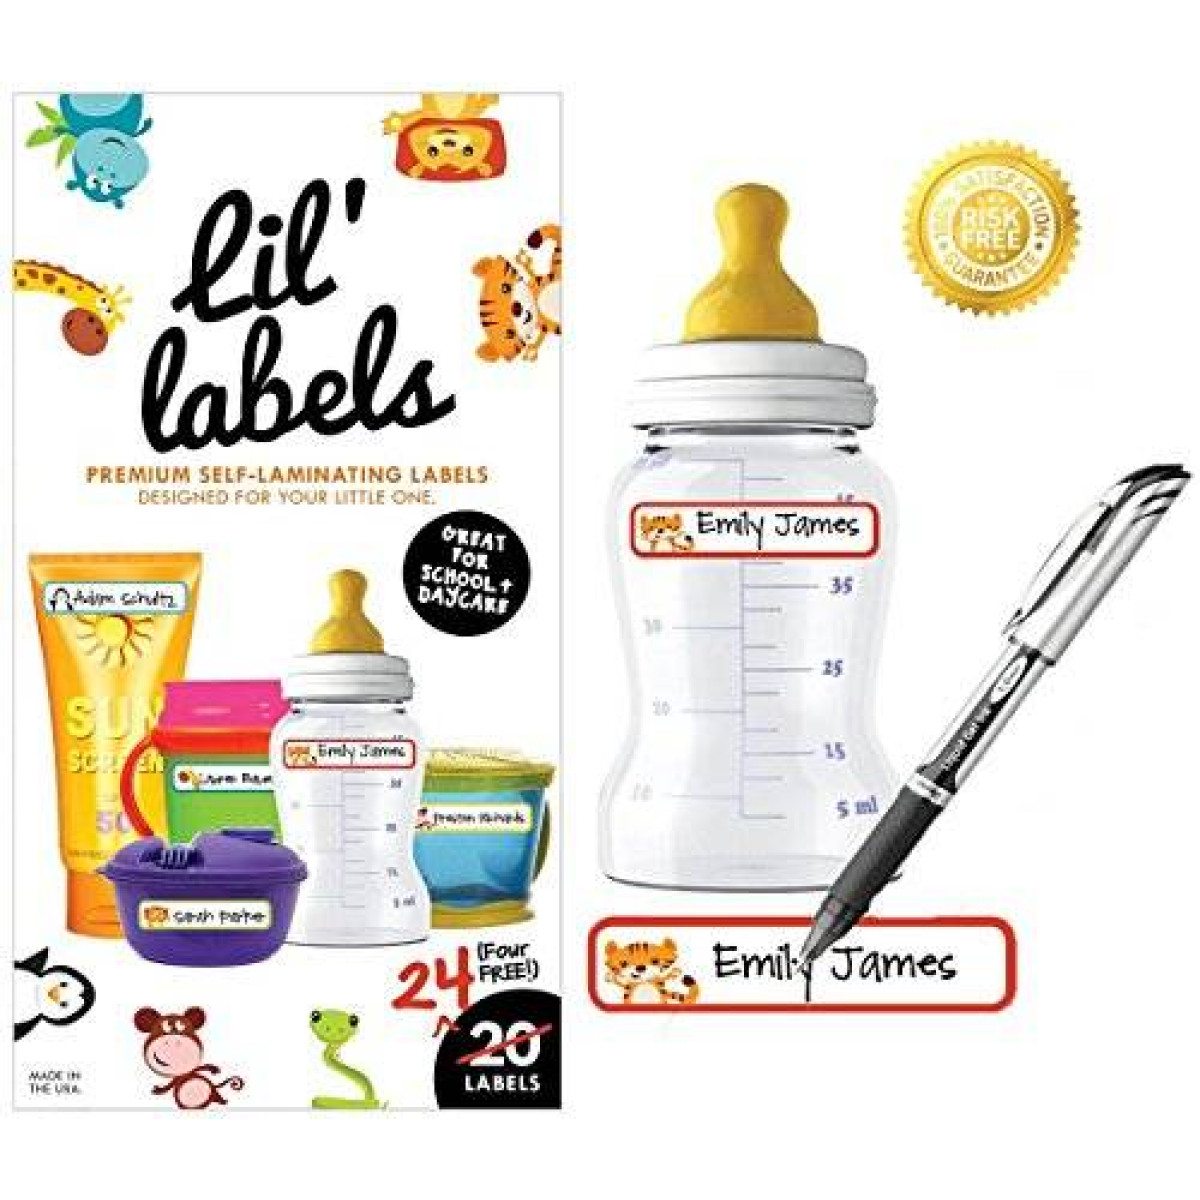 Great for Daycare Self-laminating Baby Bottle Labels